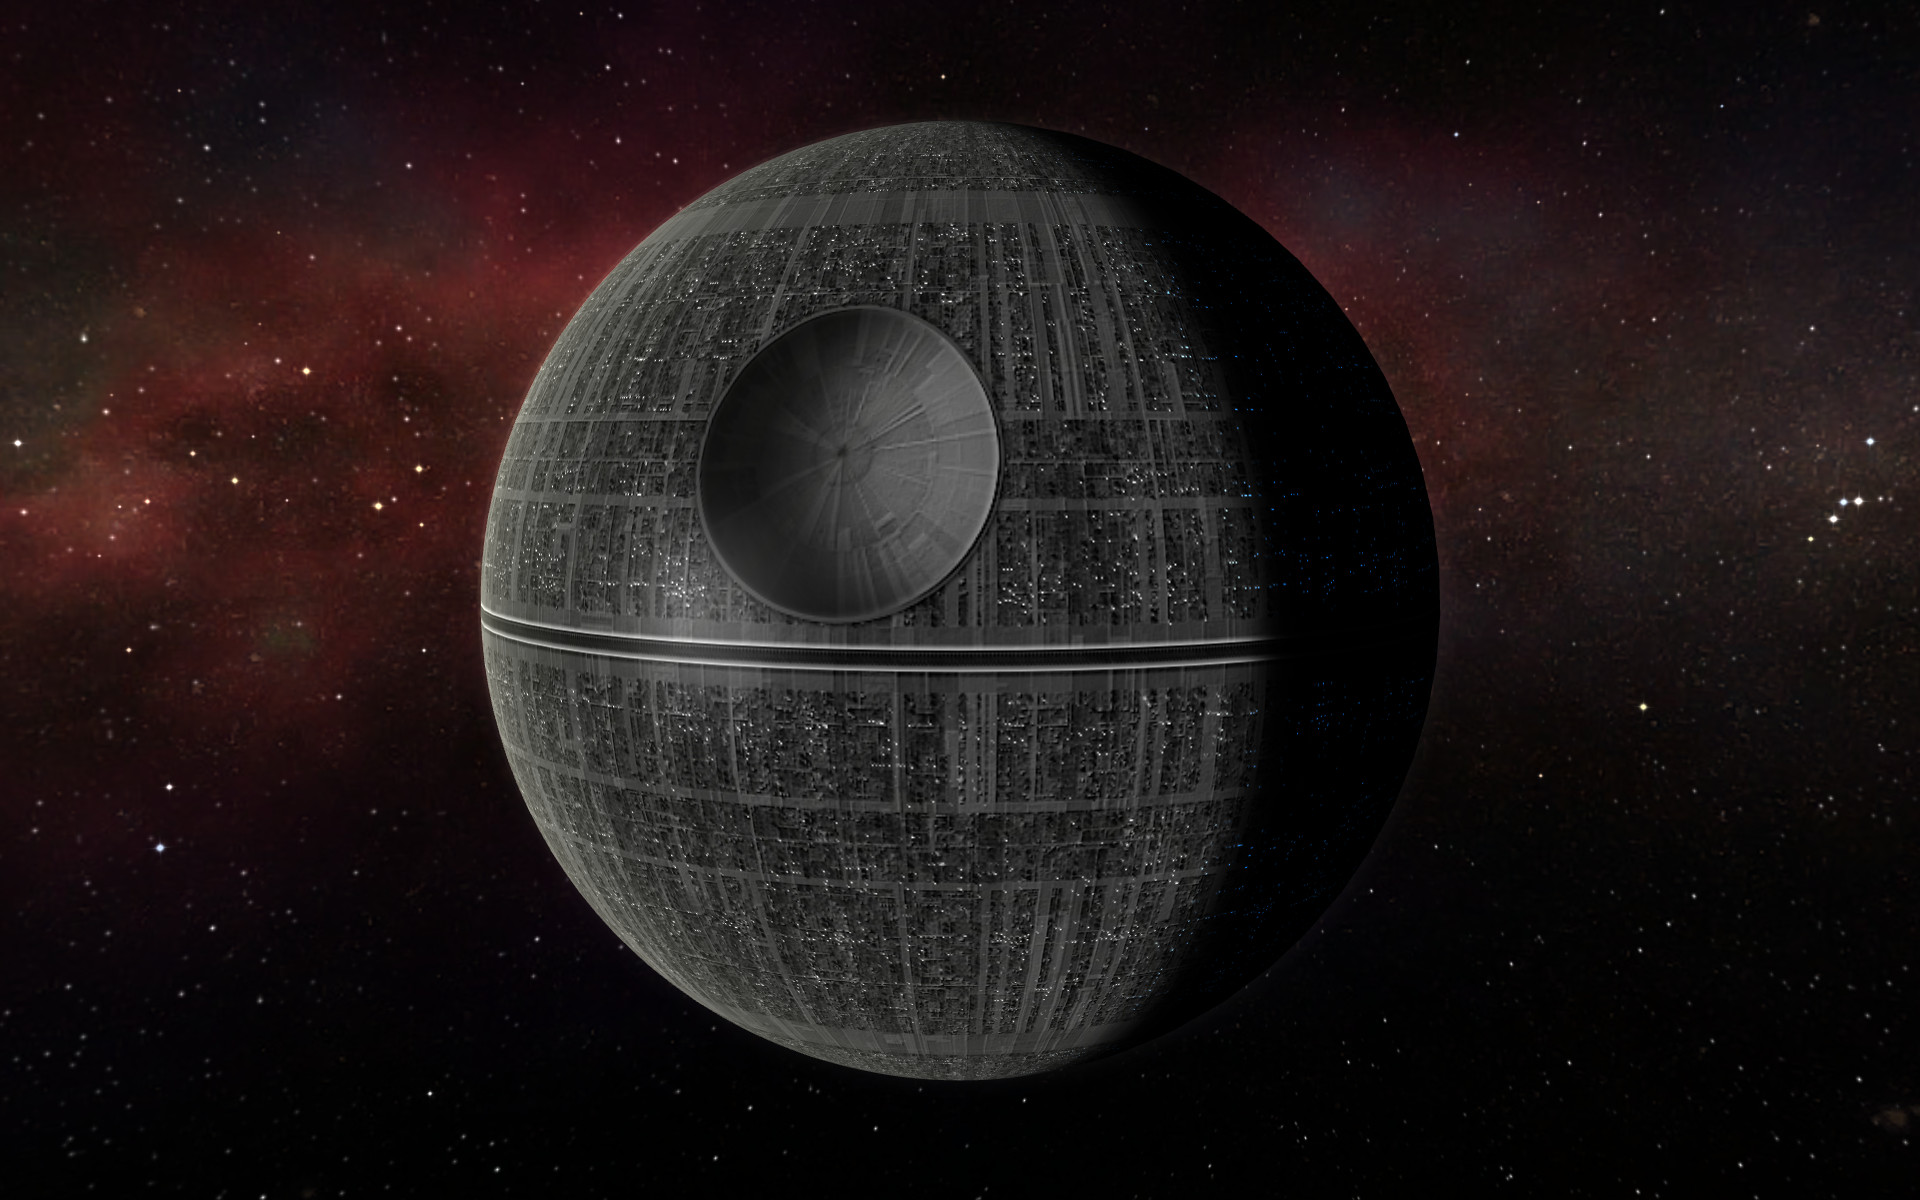 star wars death star hd backgrounds fizx. Black Bedroom Furniture Sets. Home Design Ideas